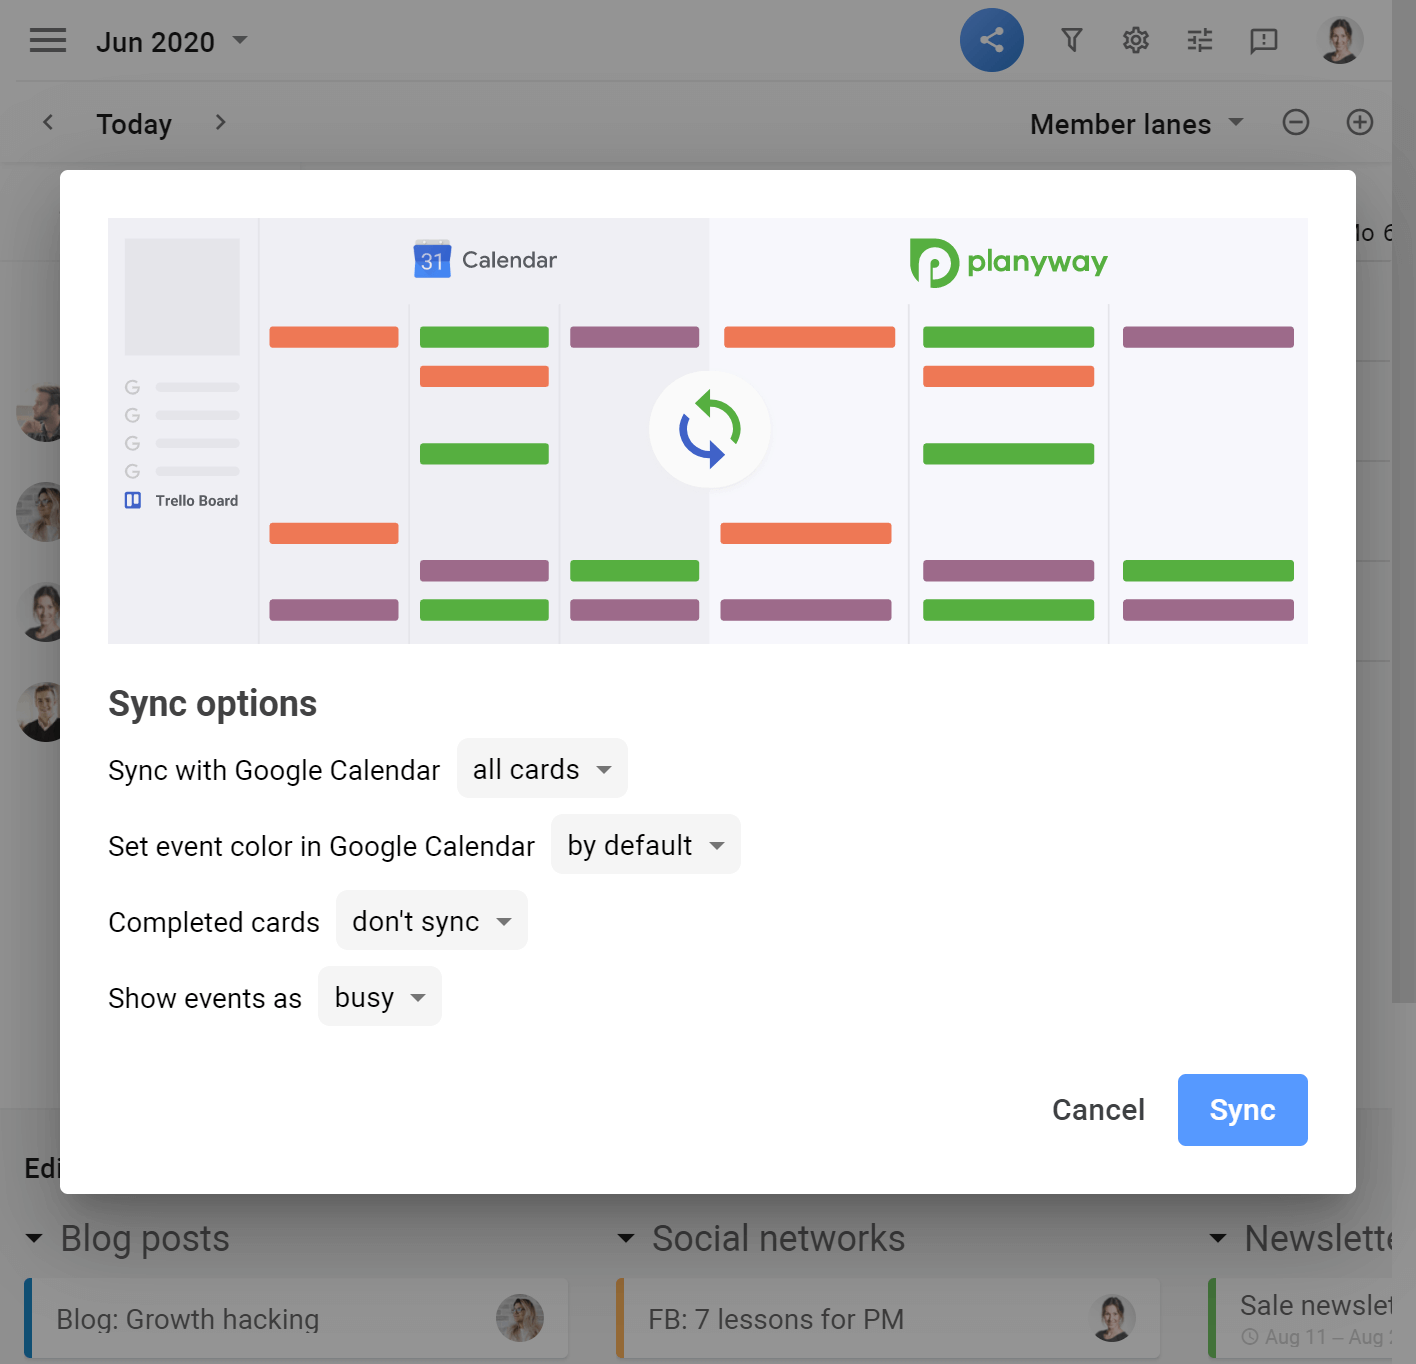 Planyway google sync options